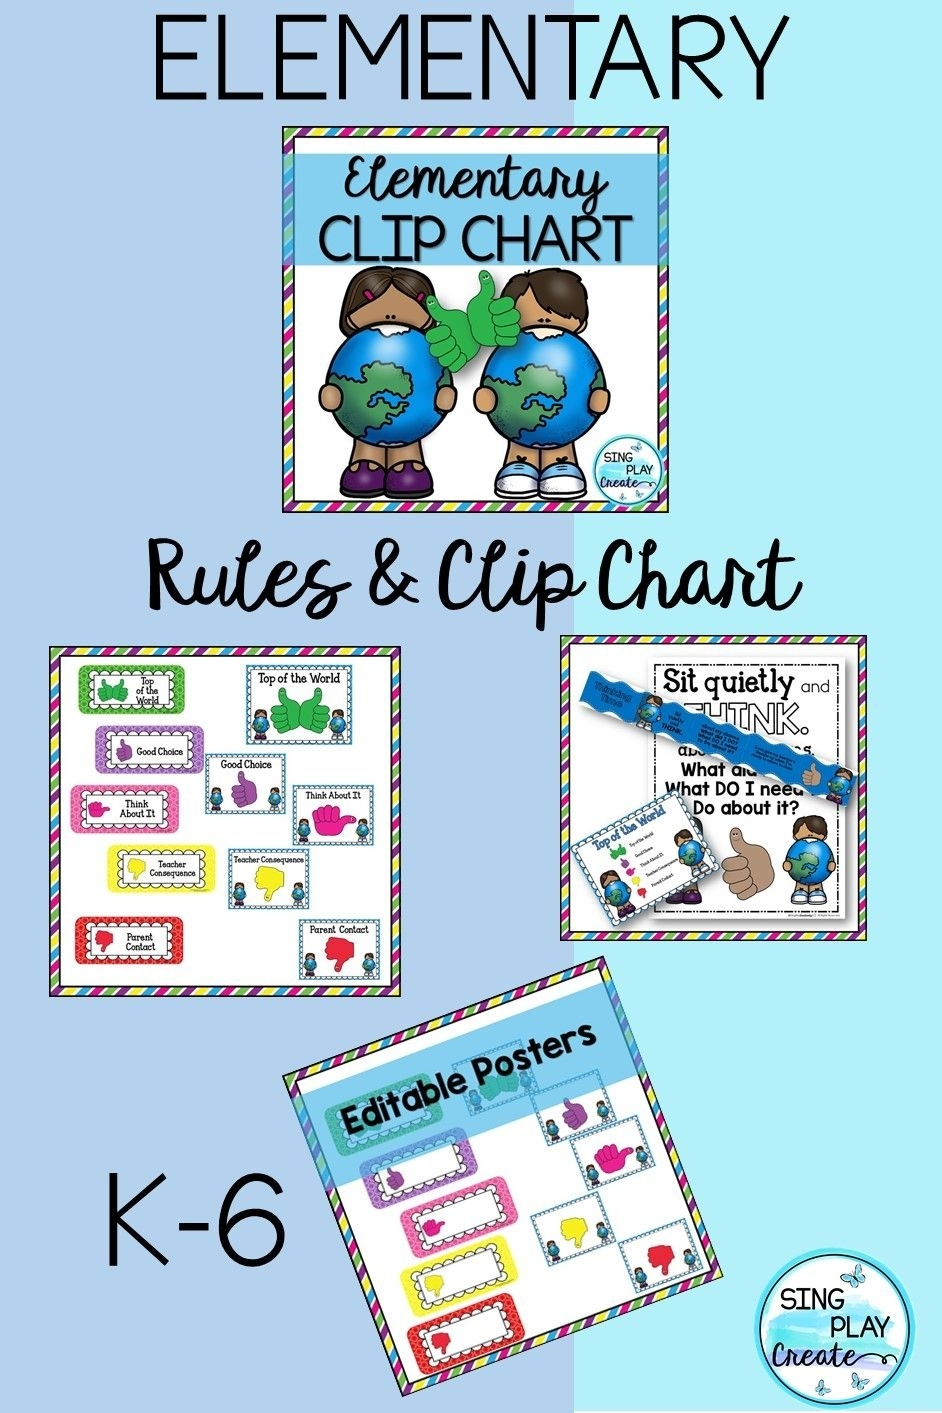 Elementary Behavior Chart And Classroom Management Plan And Editable with regard to Conducut Chart For Play School